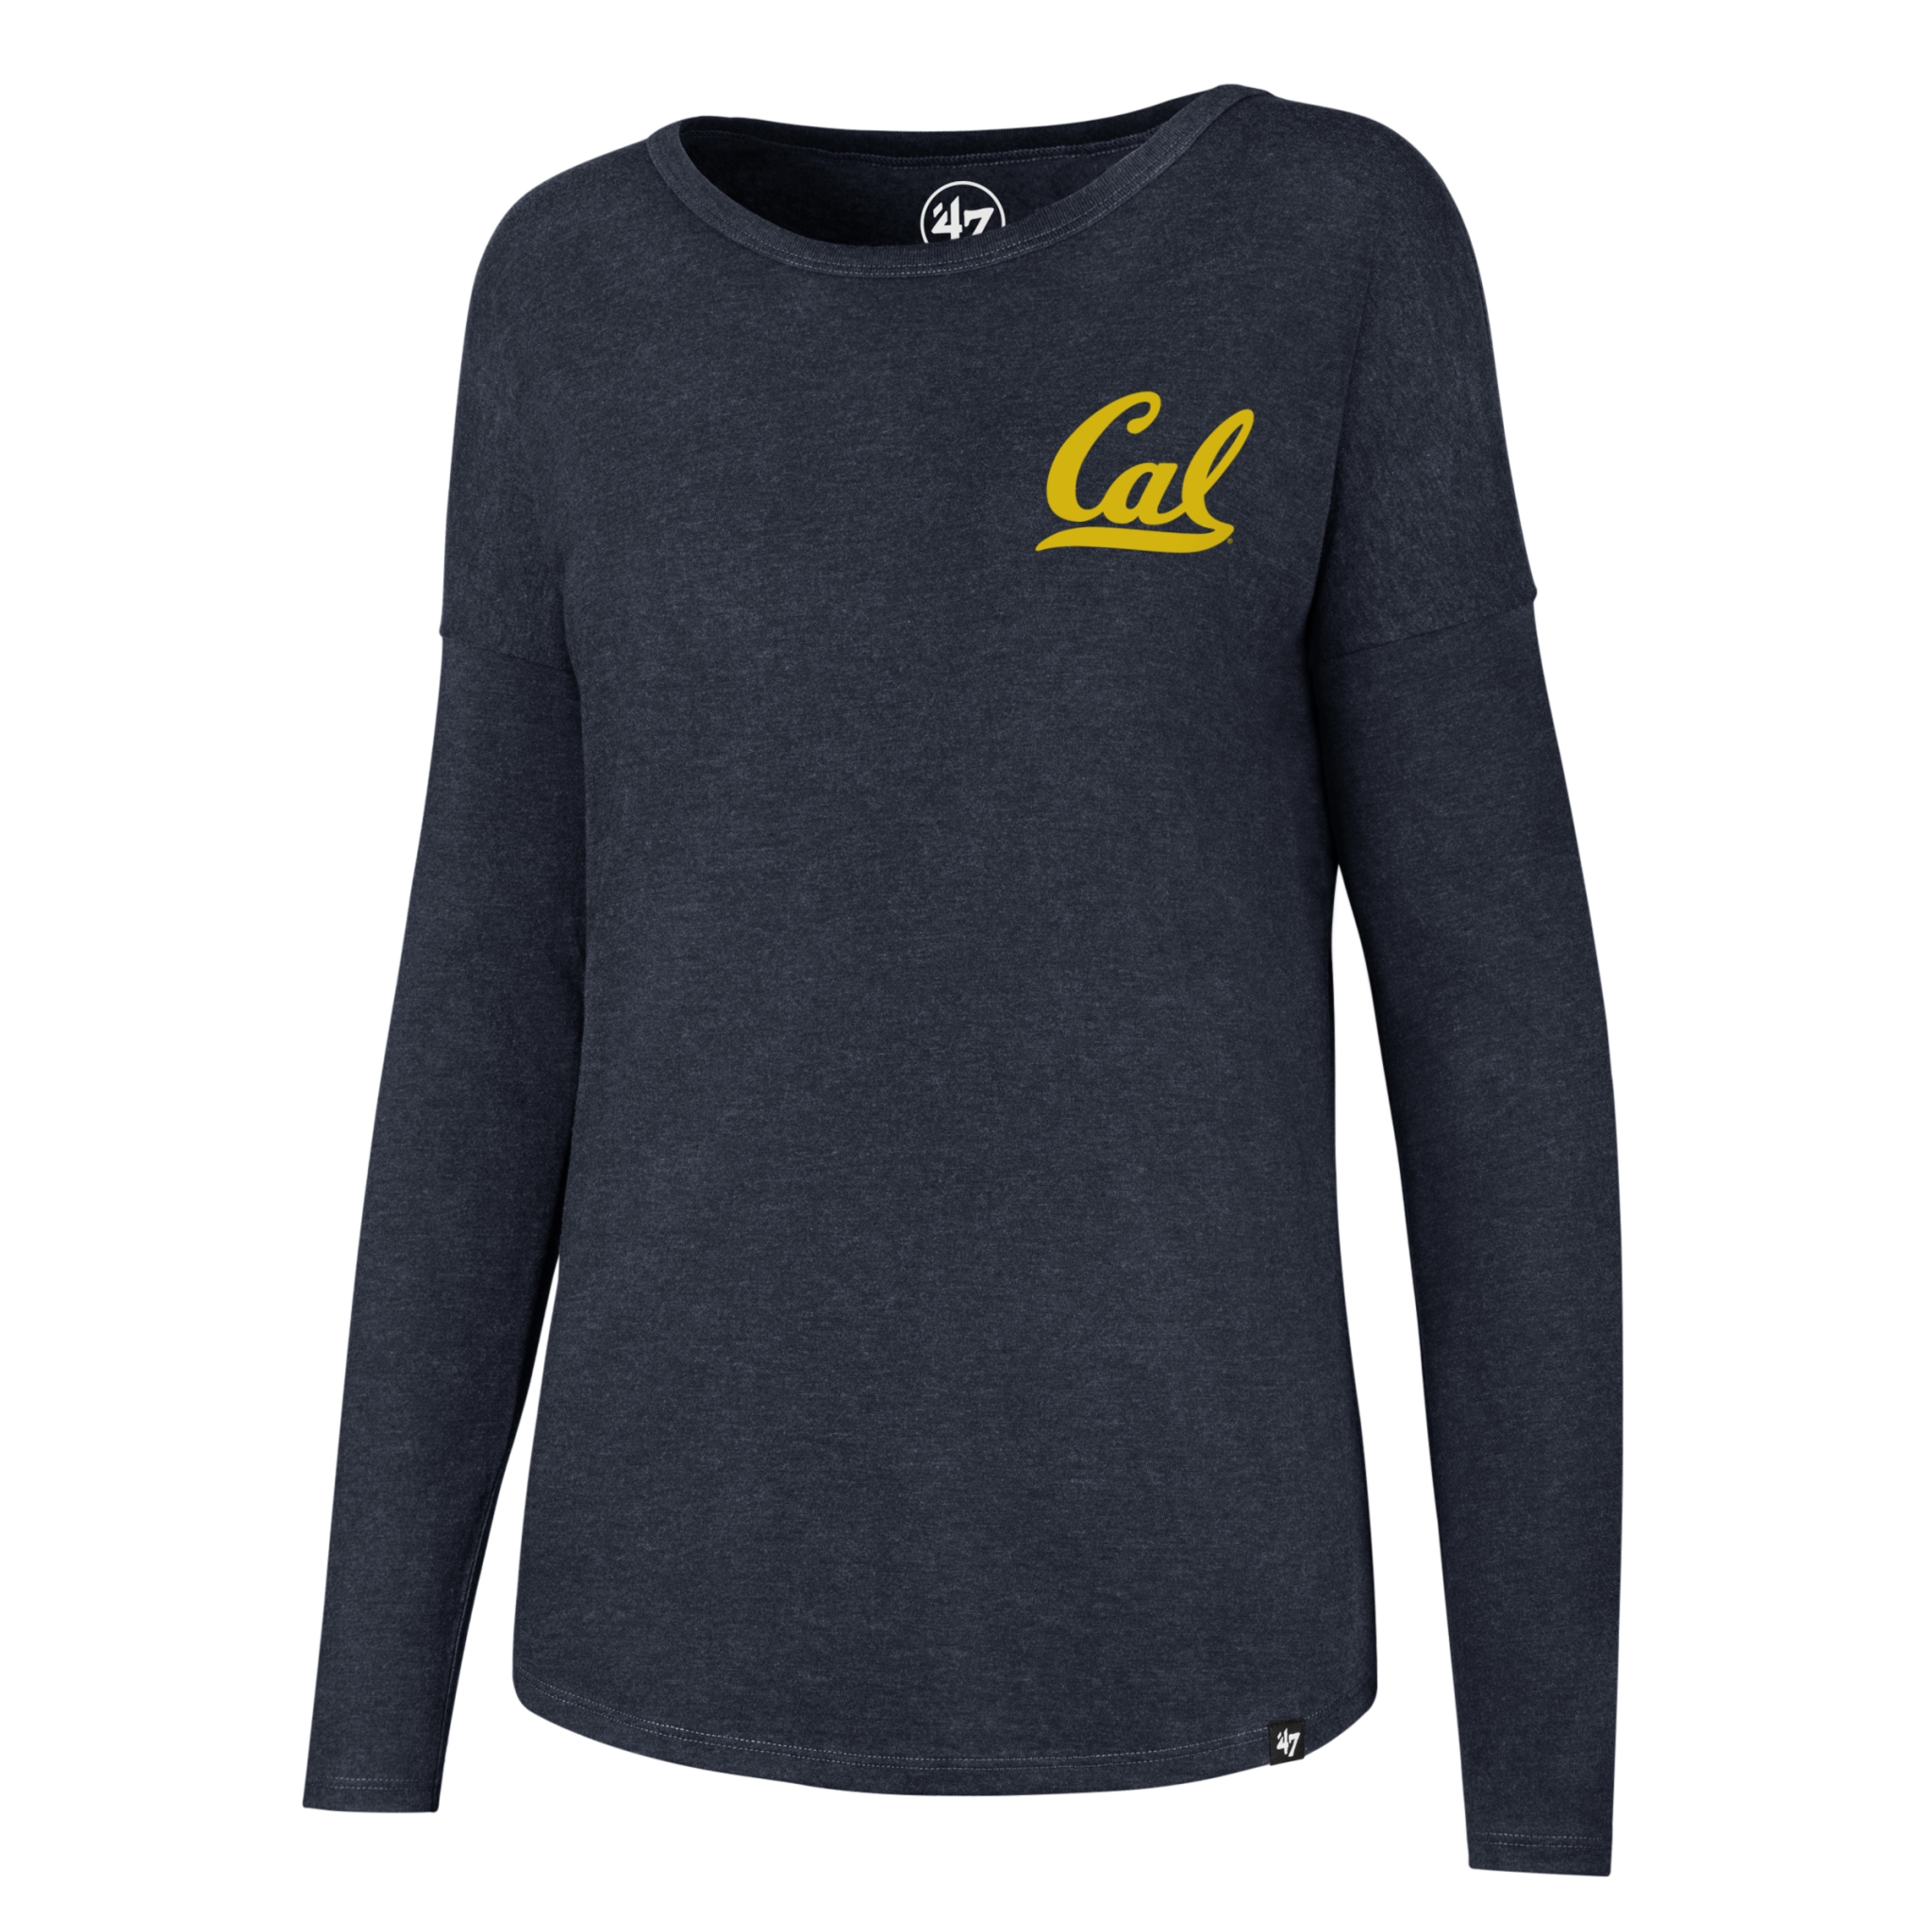 University of California Berkeley Golden Bears Club Courtside L/S Tee